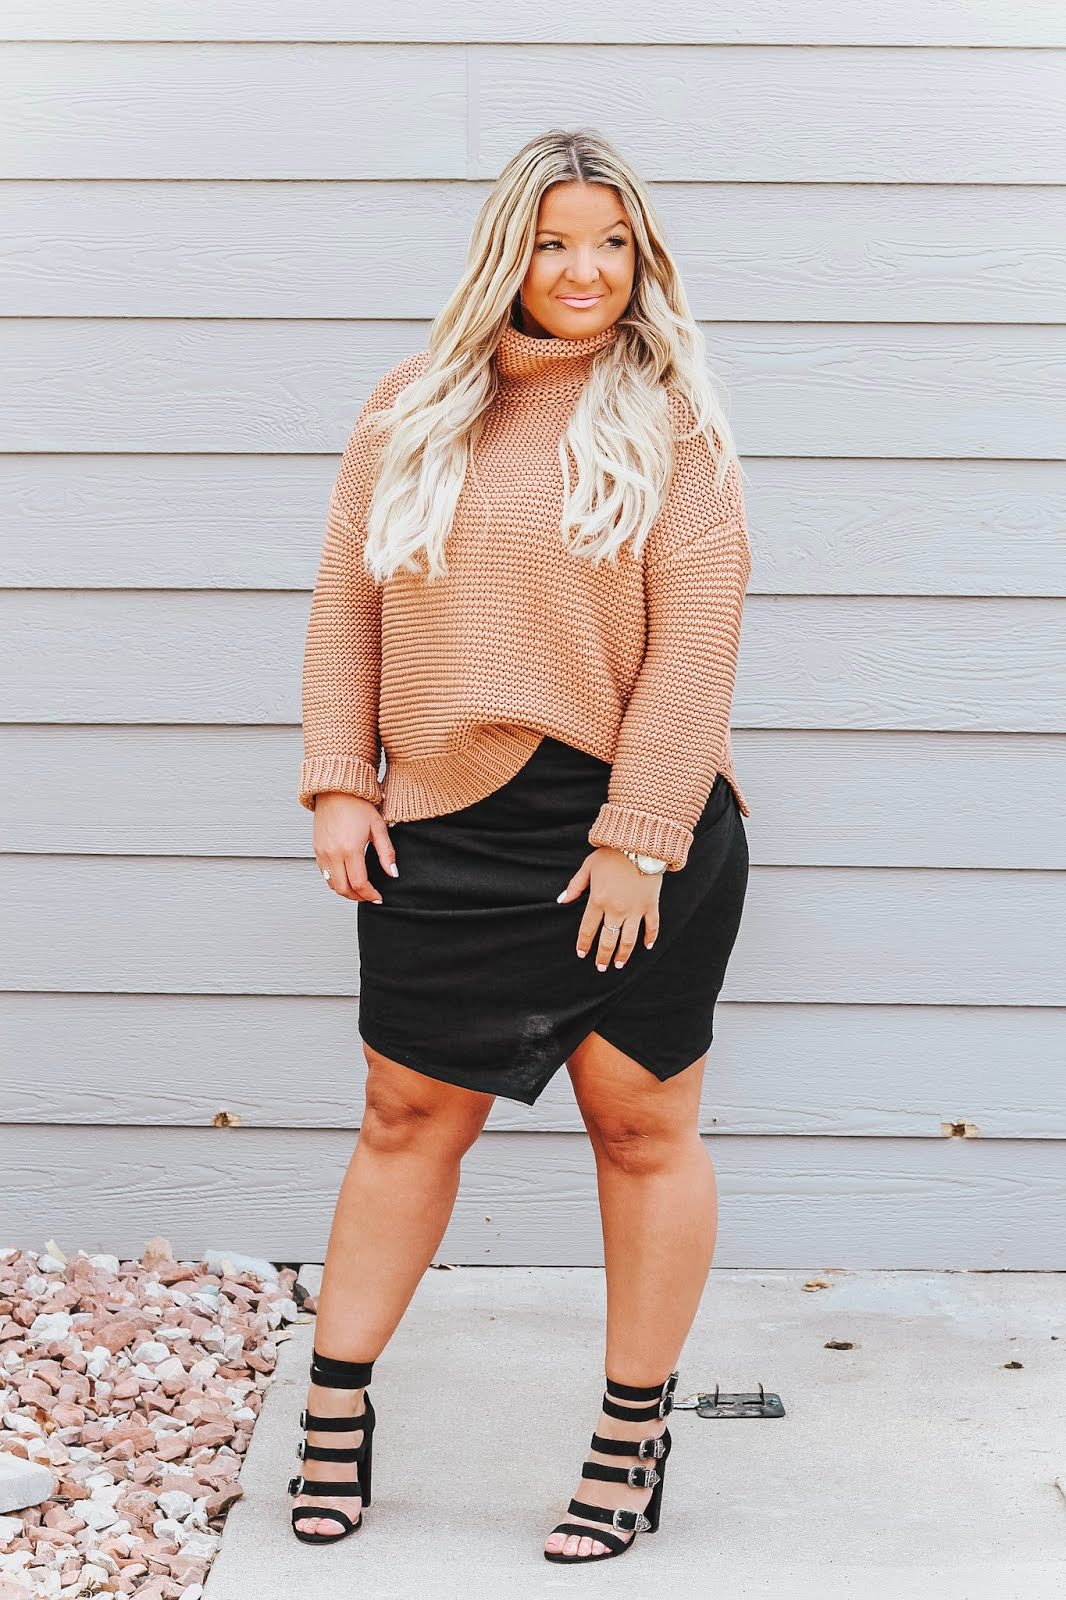 Asymmetrical Skirt styled by popular Denver fashion blogger, Delayna Denaye